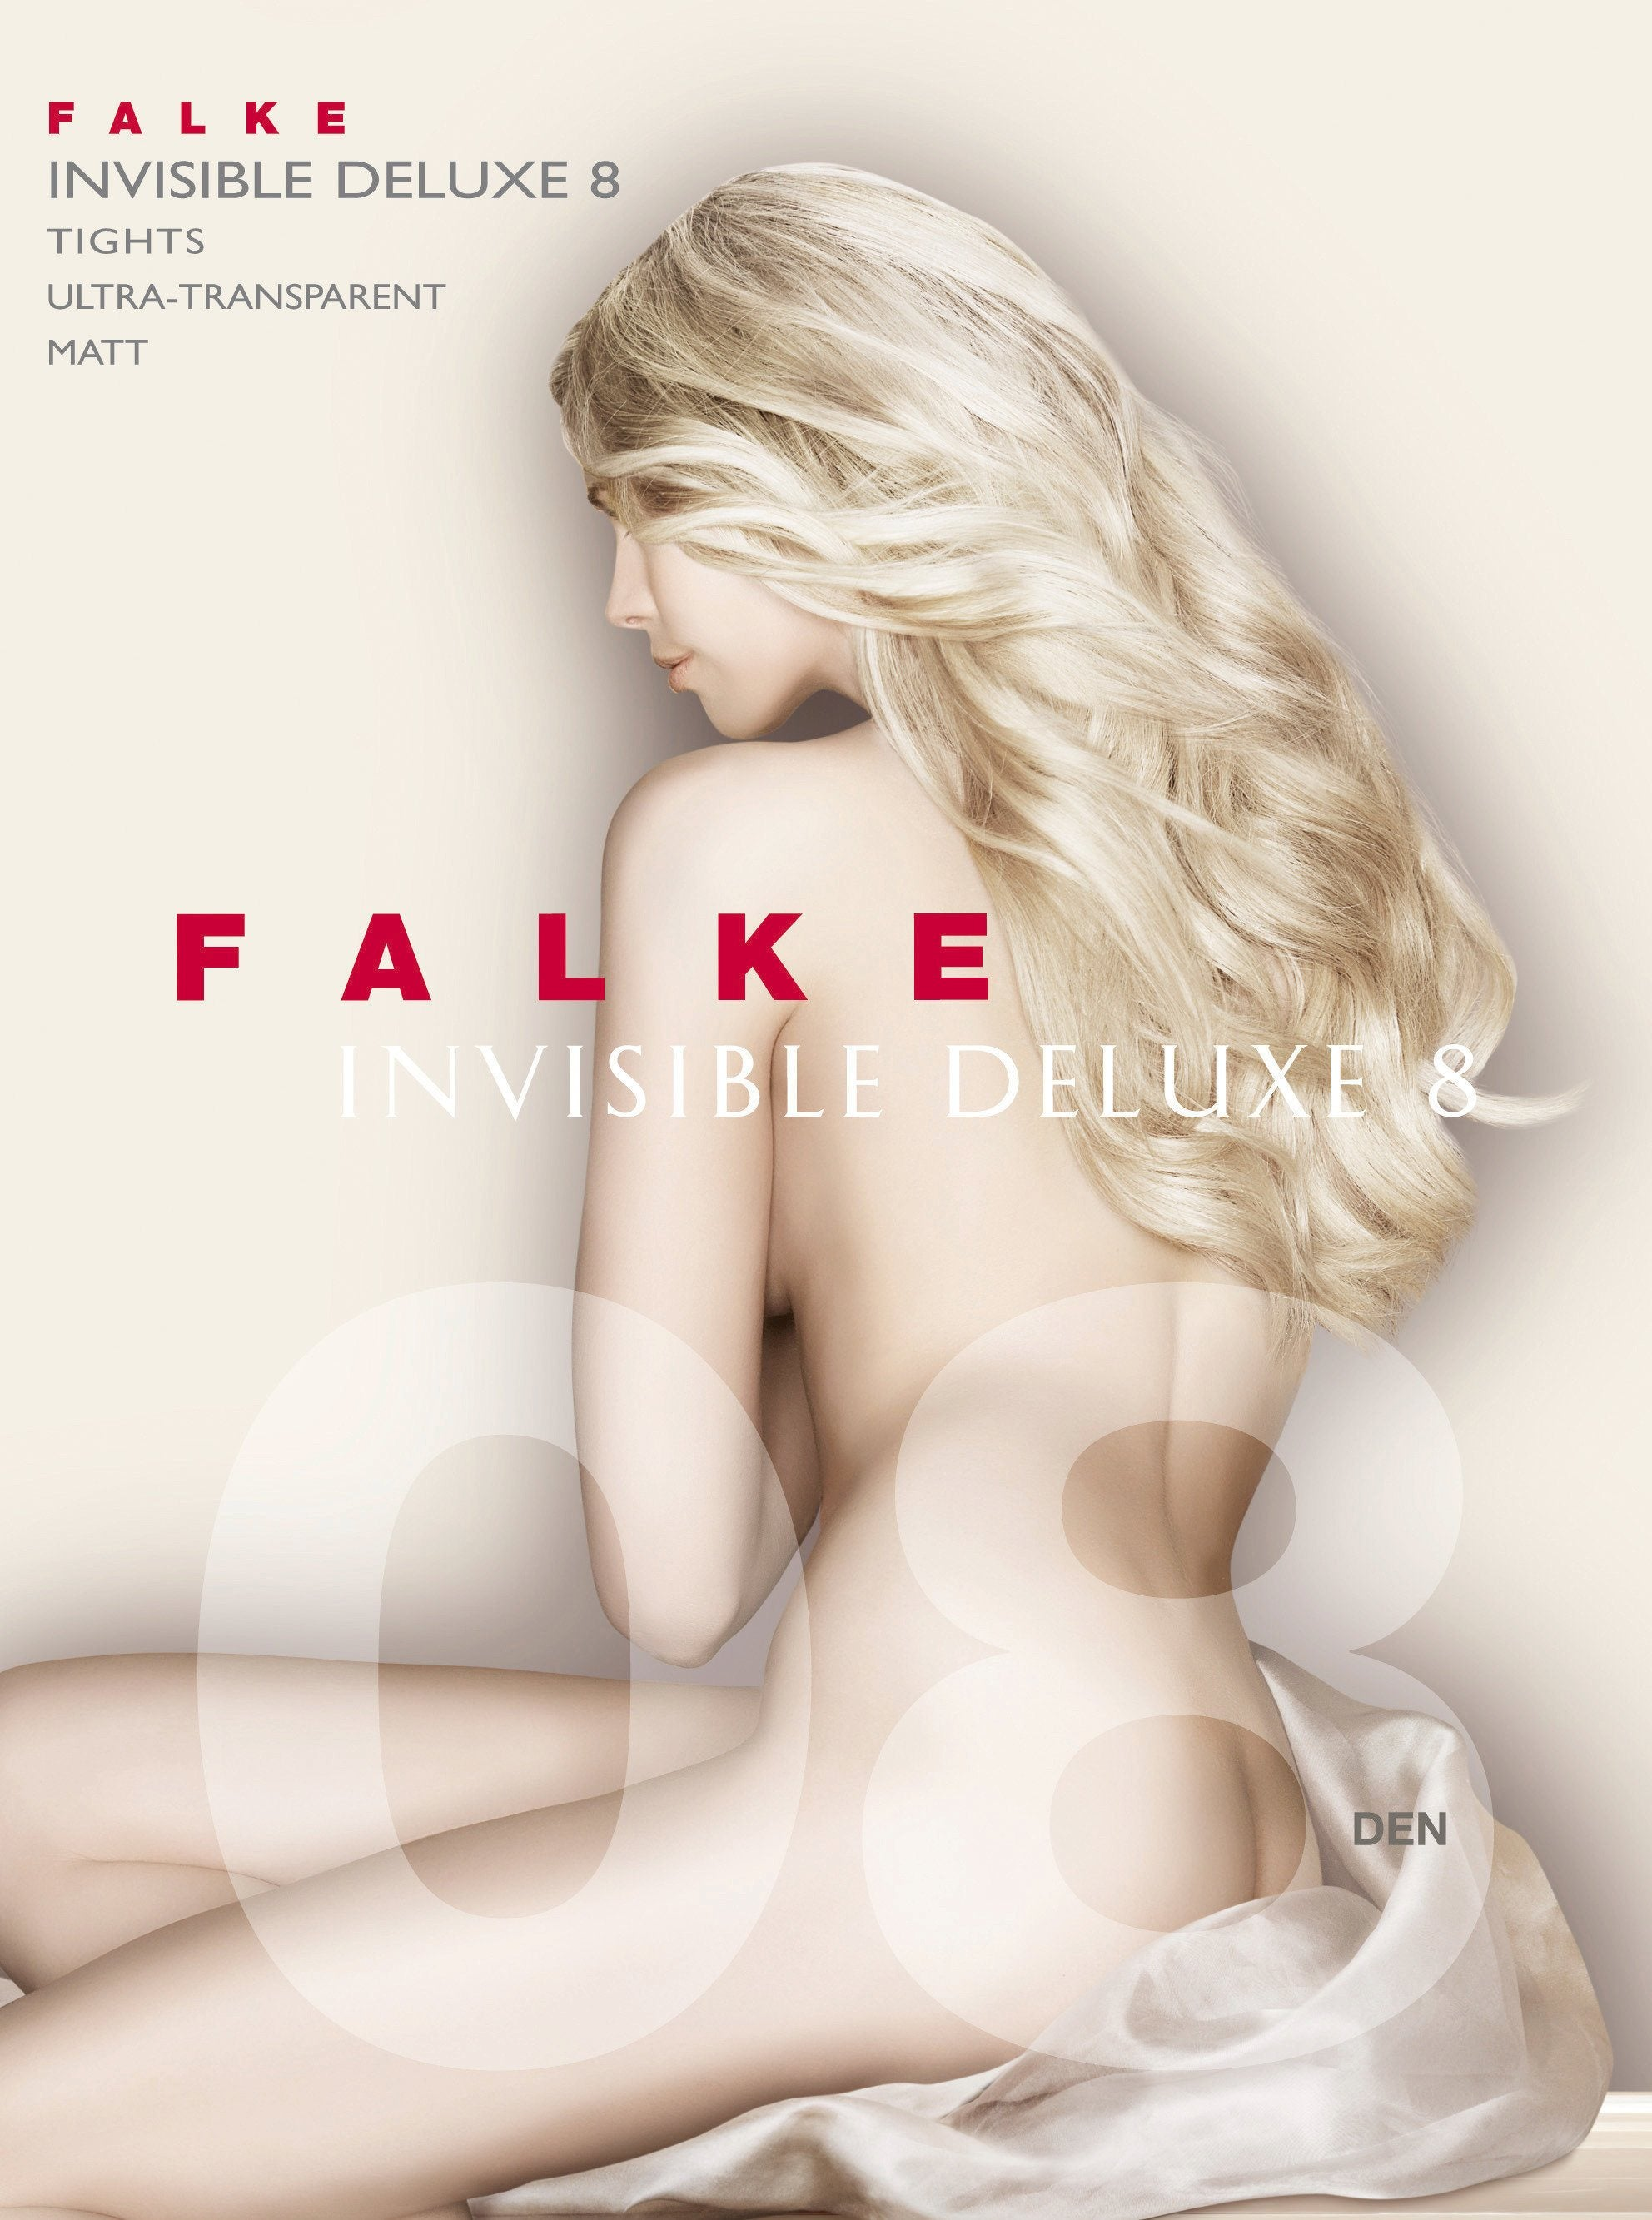 Invisible Deluxe 8 Den Tights